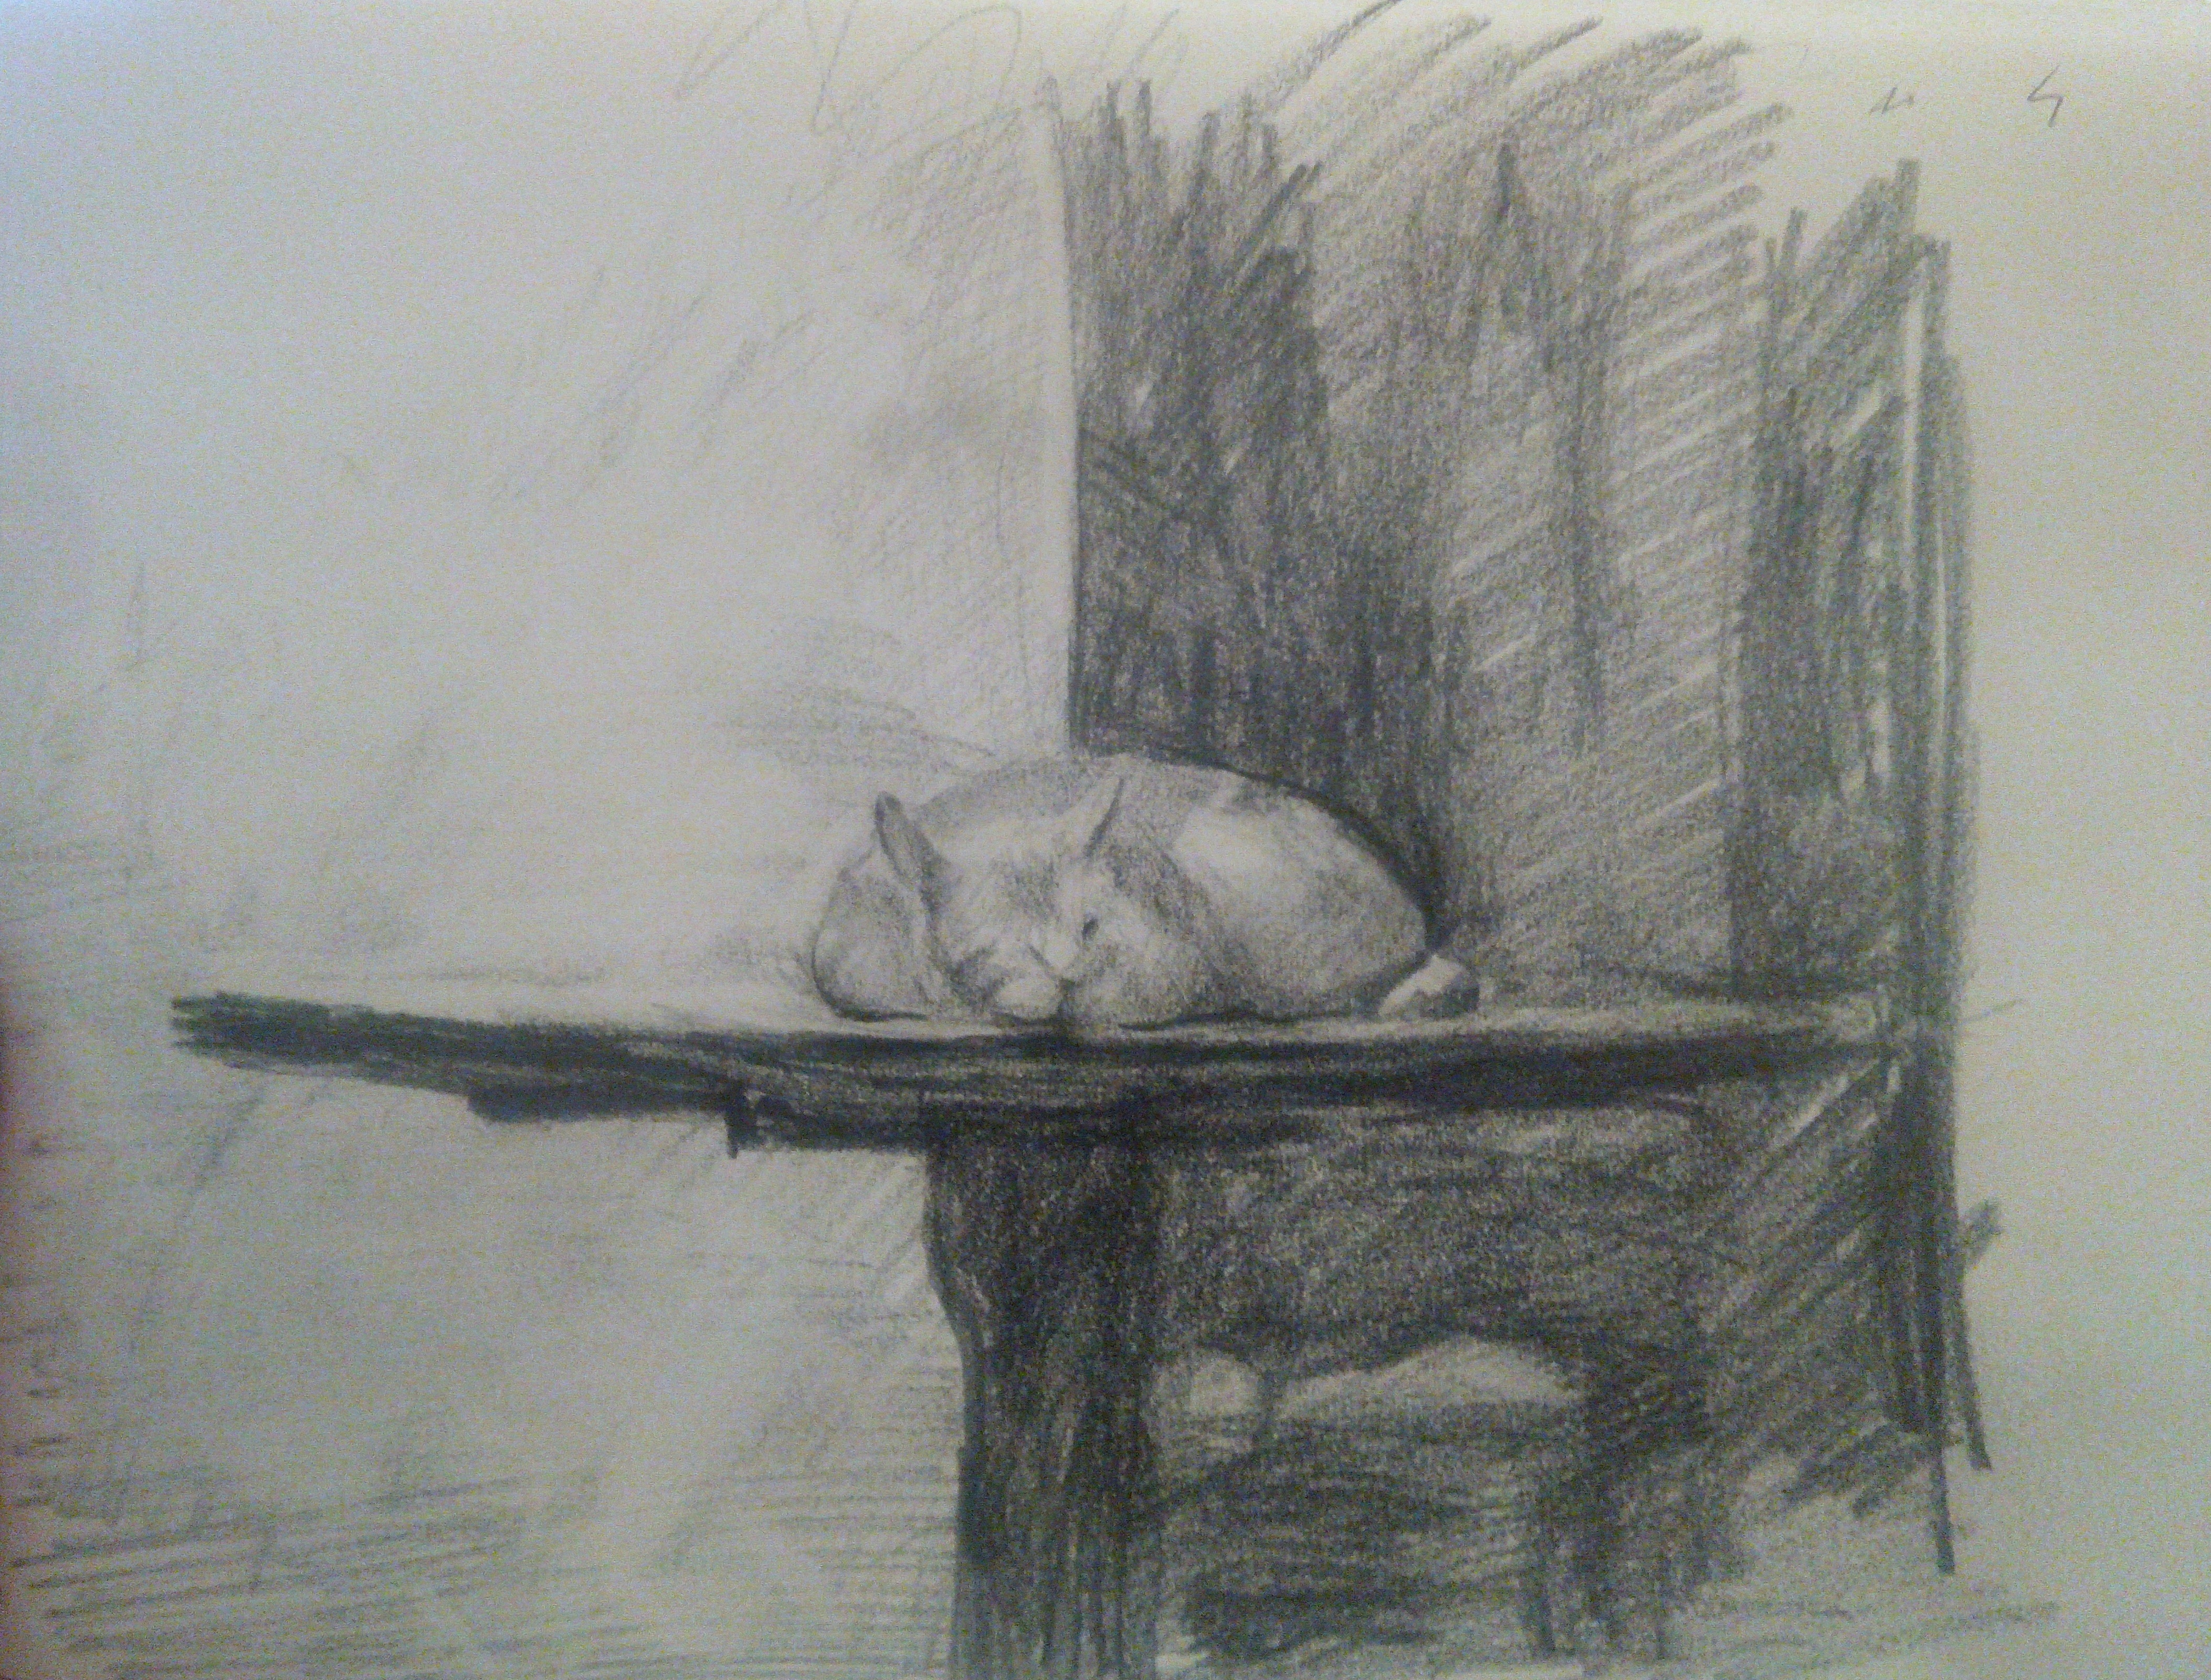 Cat on Table / Pencil on Paper